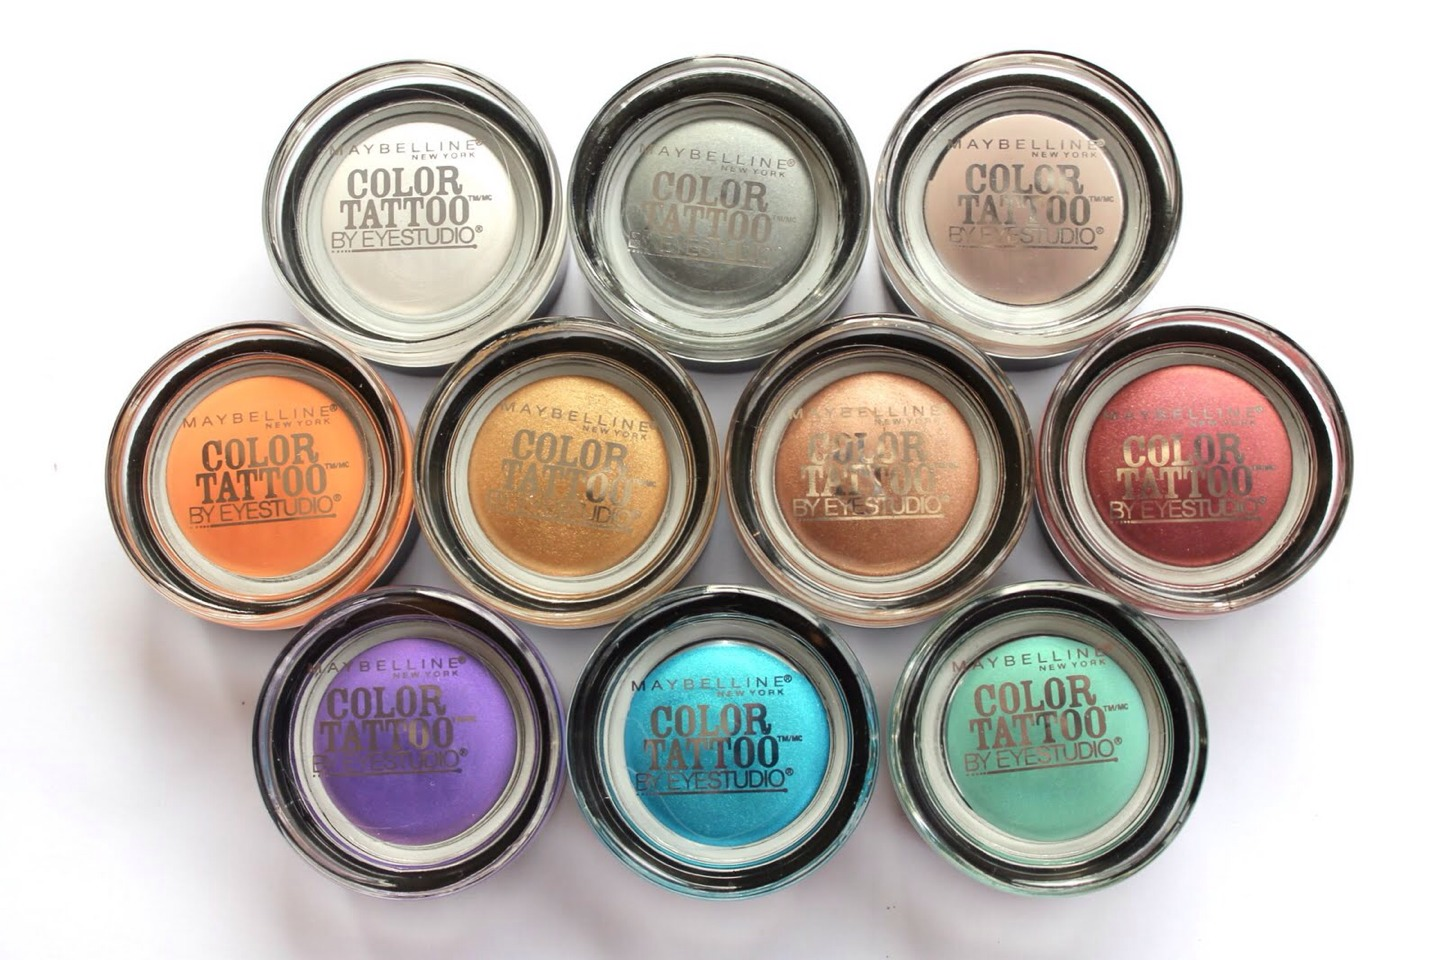 These eyeshadows have a gel to cream formula. They are so easy to apply and the colours are stunning. They are so pigmented and they can also be very subtle. And at 4.99 I think they are a total bargain. Available at boots.